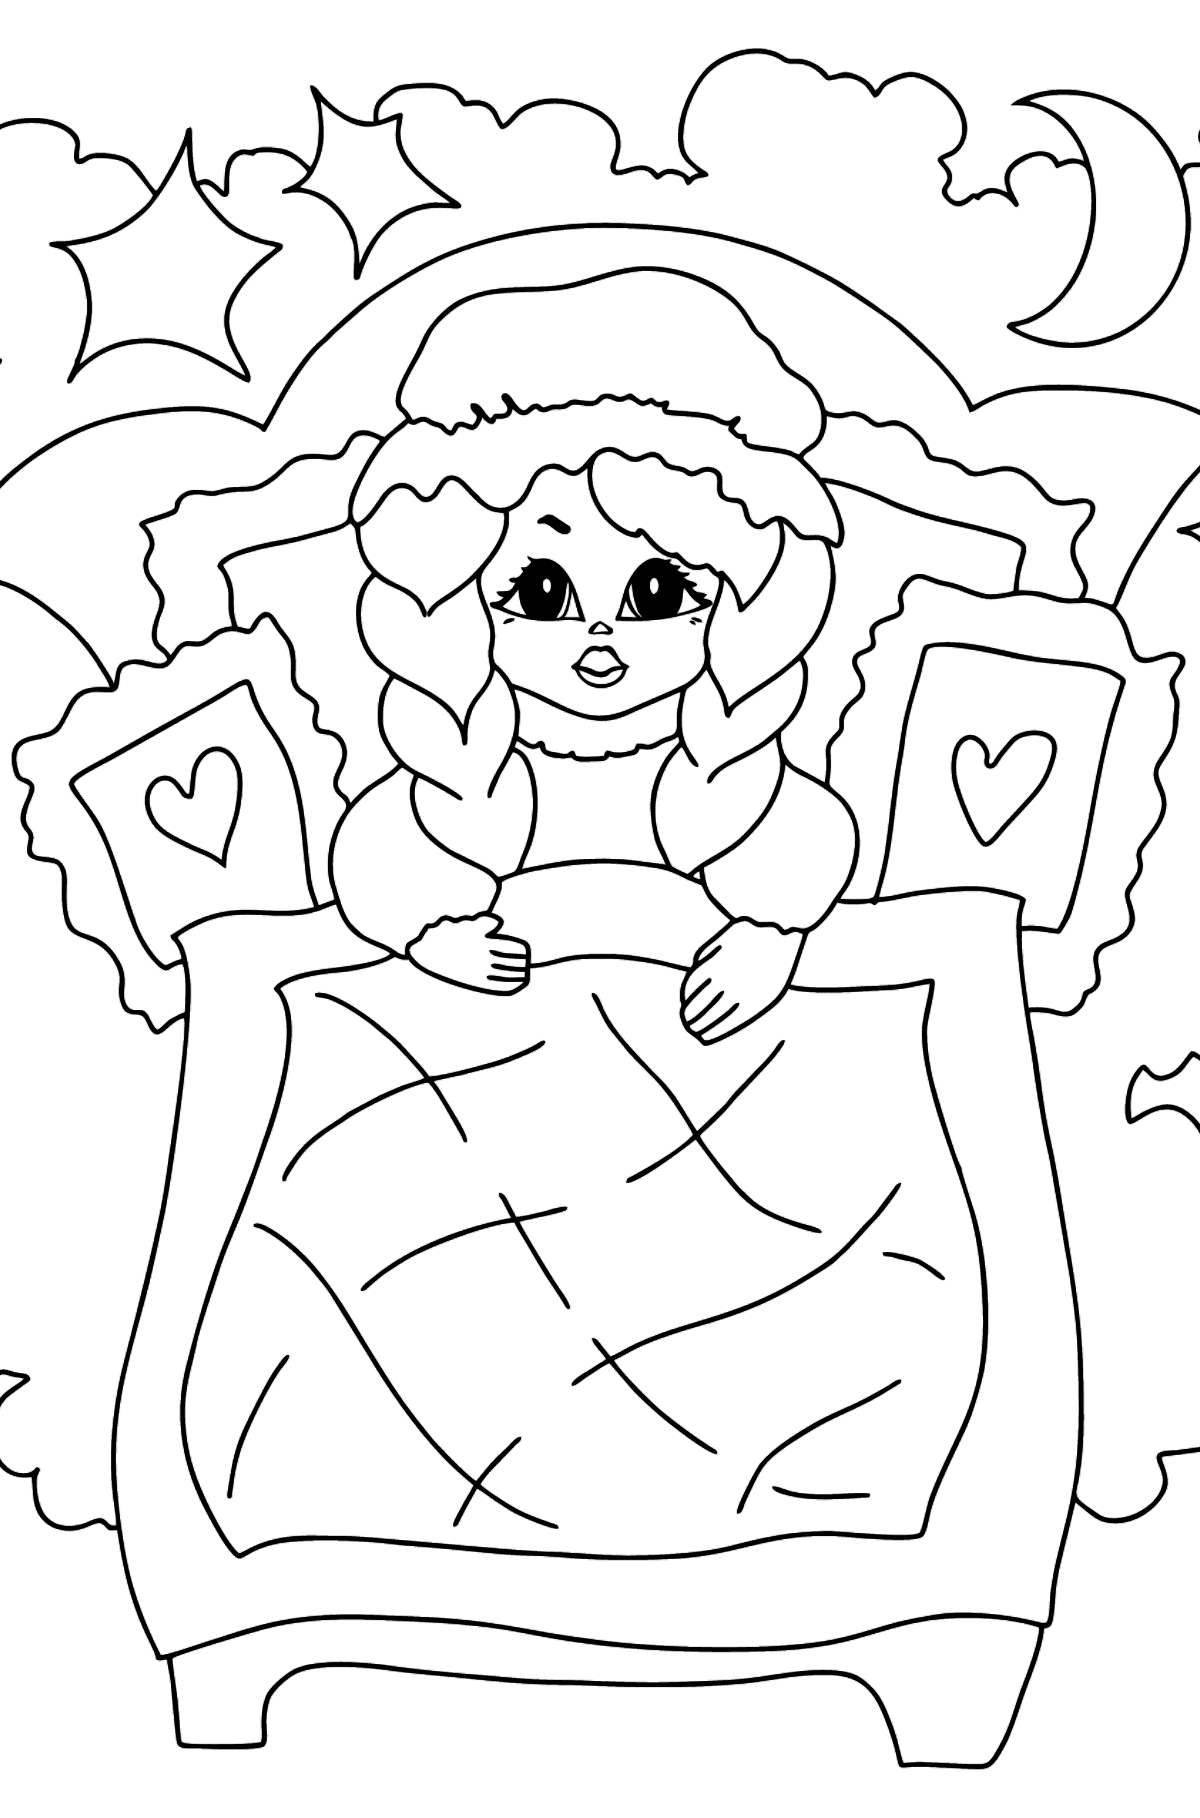 Coloring Page - A Princess in a Bed - for Girls - Coloring Pages for Kids